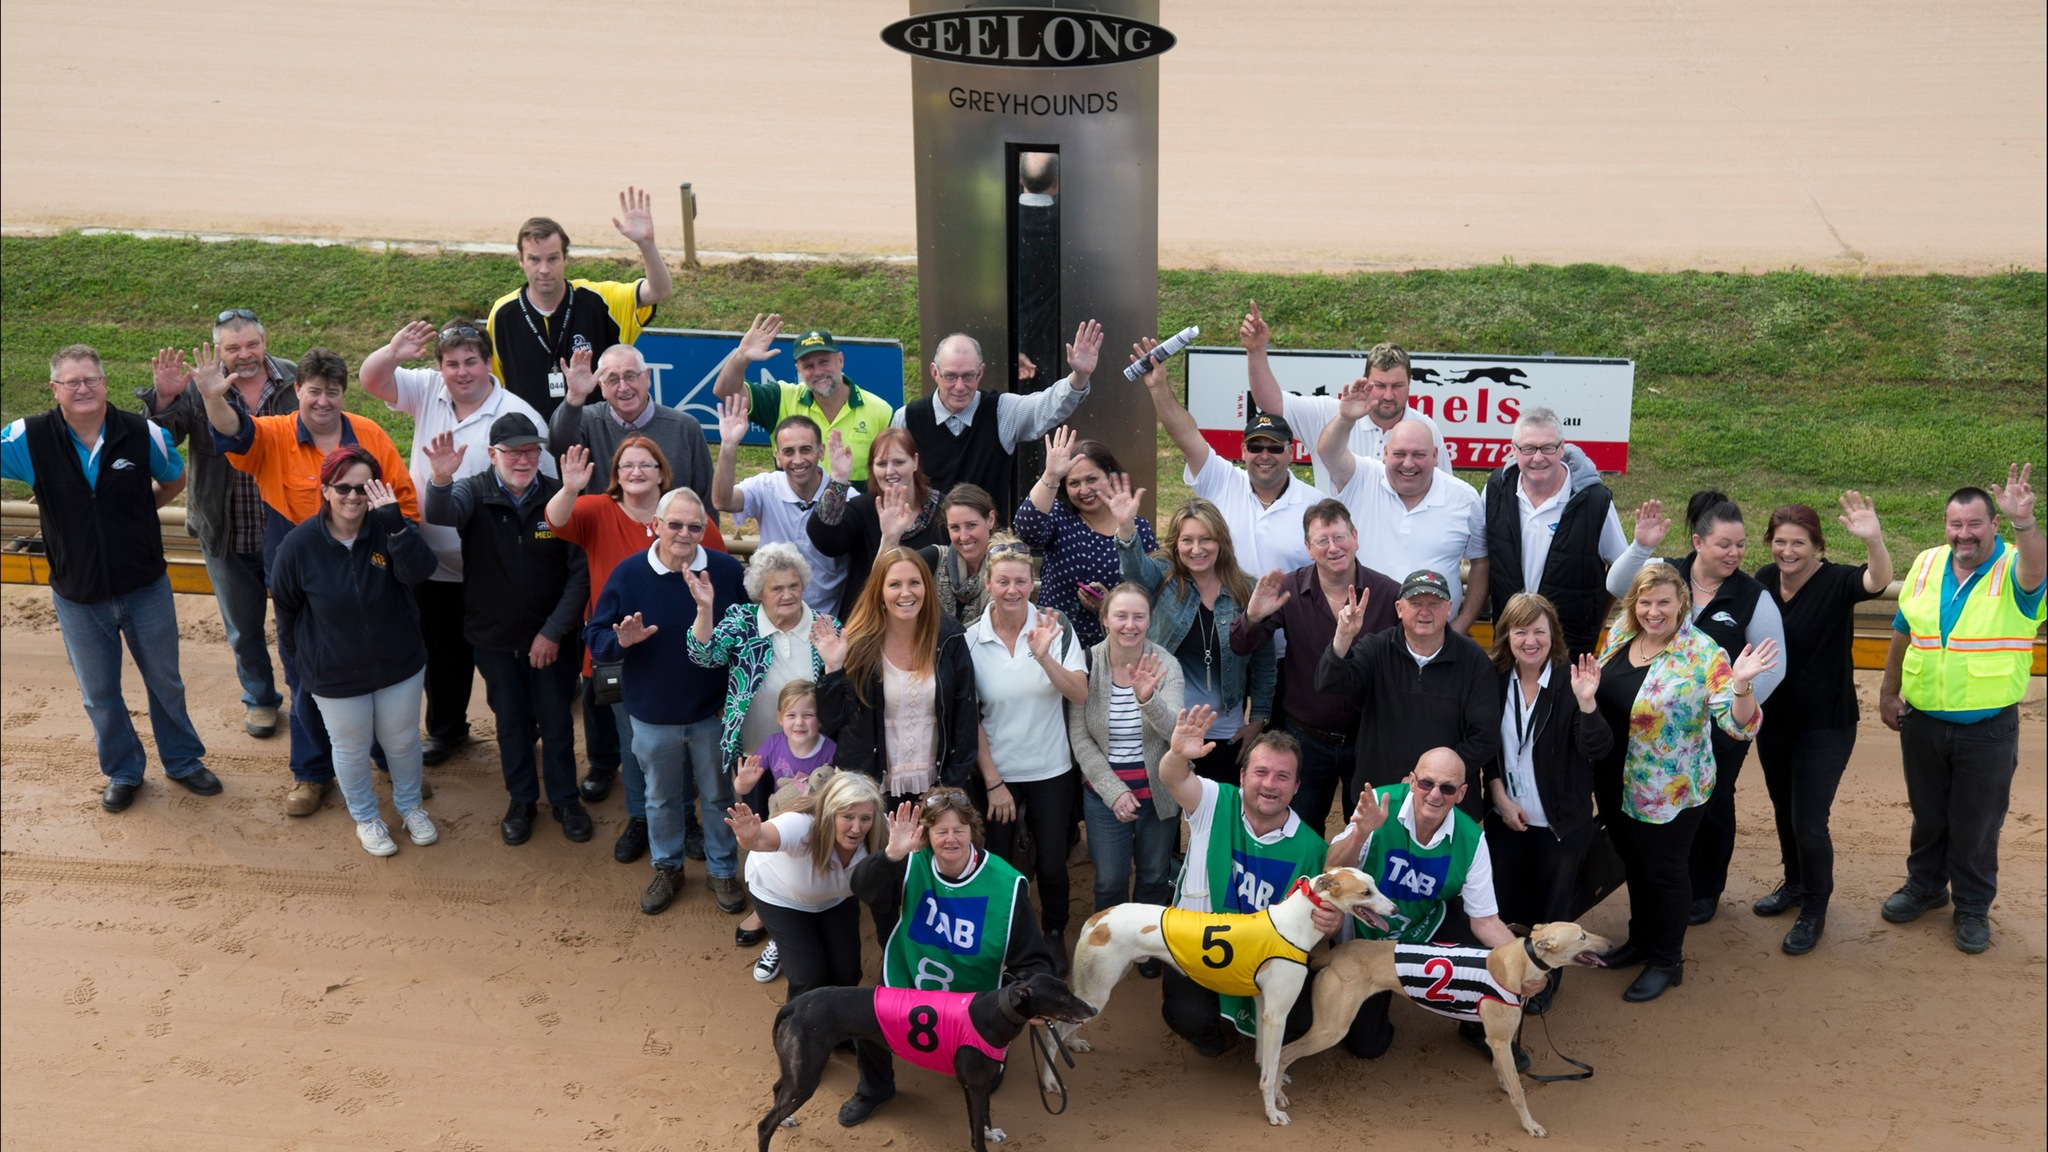 Geelong Greyhound Club and the community they support